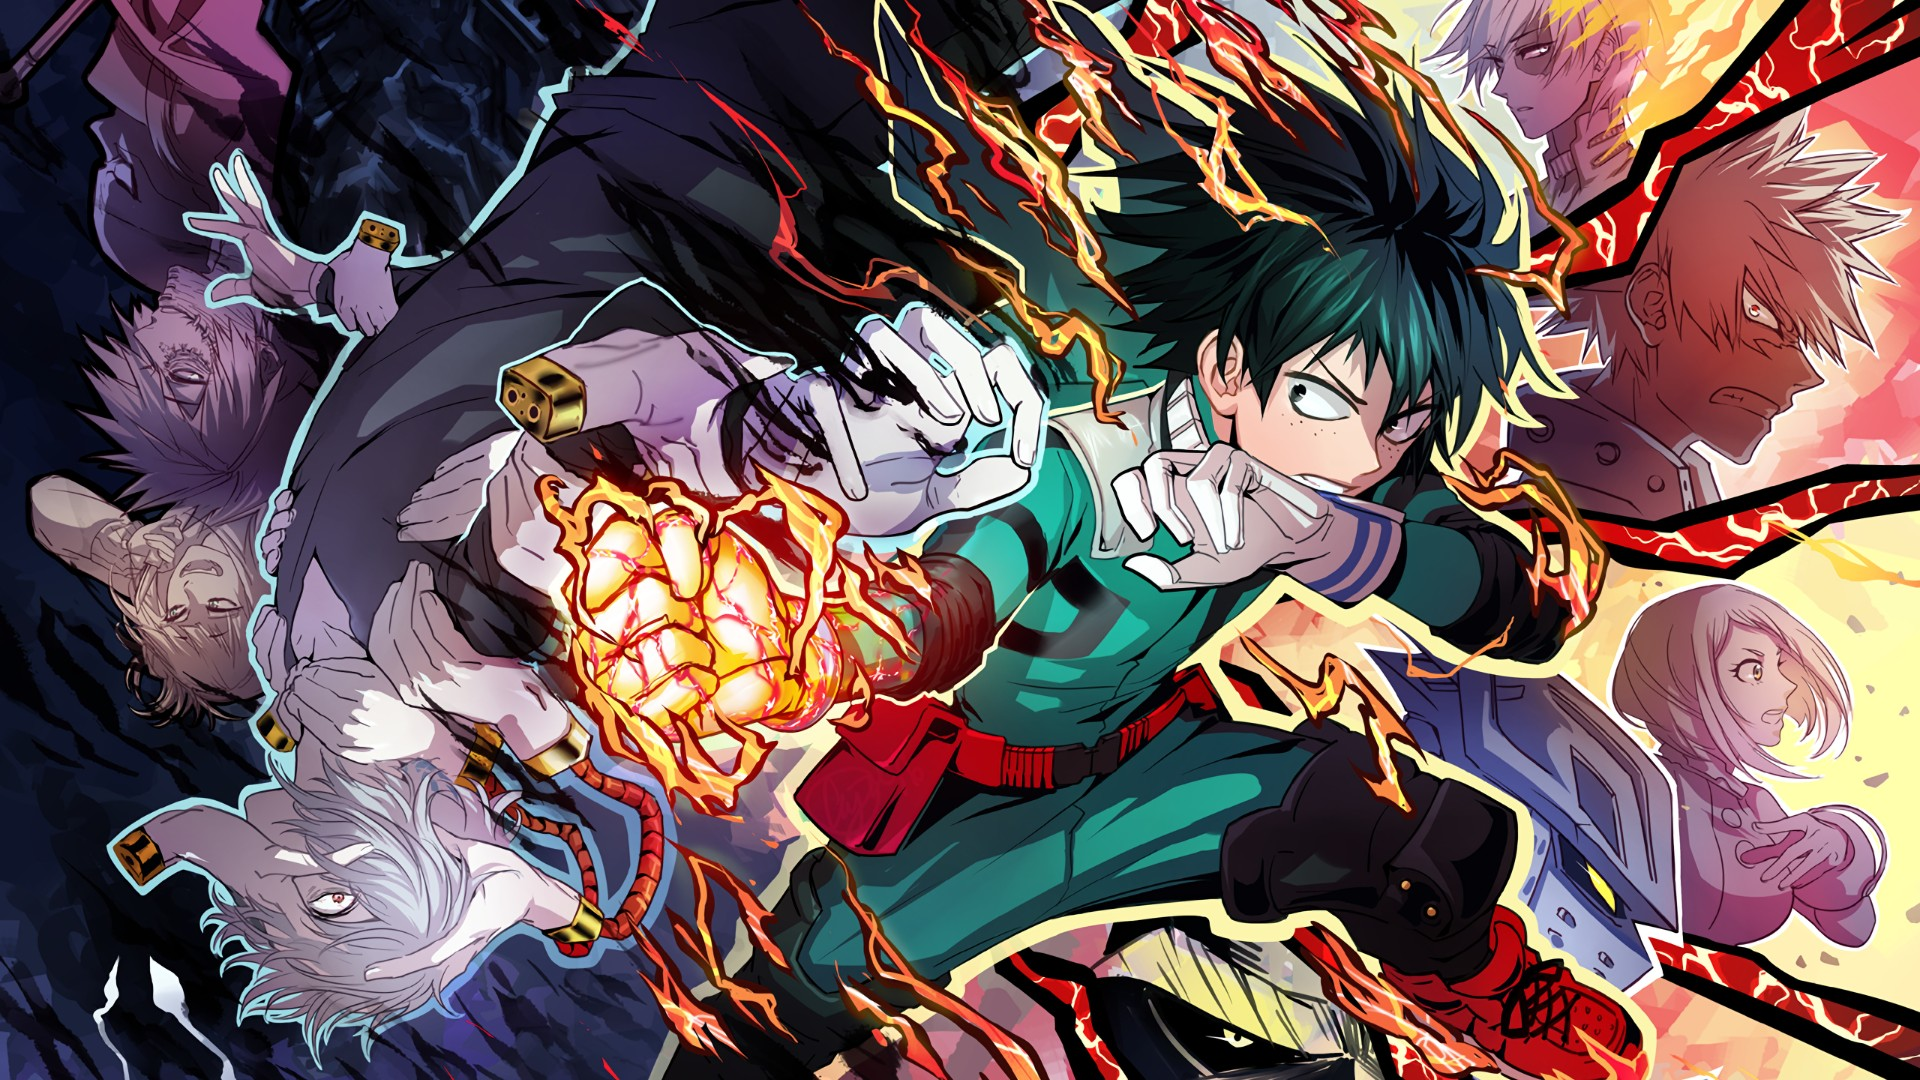 Heroes call recently made a big splash onto the app store, touting itself as a viable mobile alternative for diablo fans. My Hero Academia Movies Wallpaper HD | 2021 Movie Poster ...